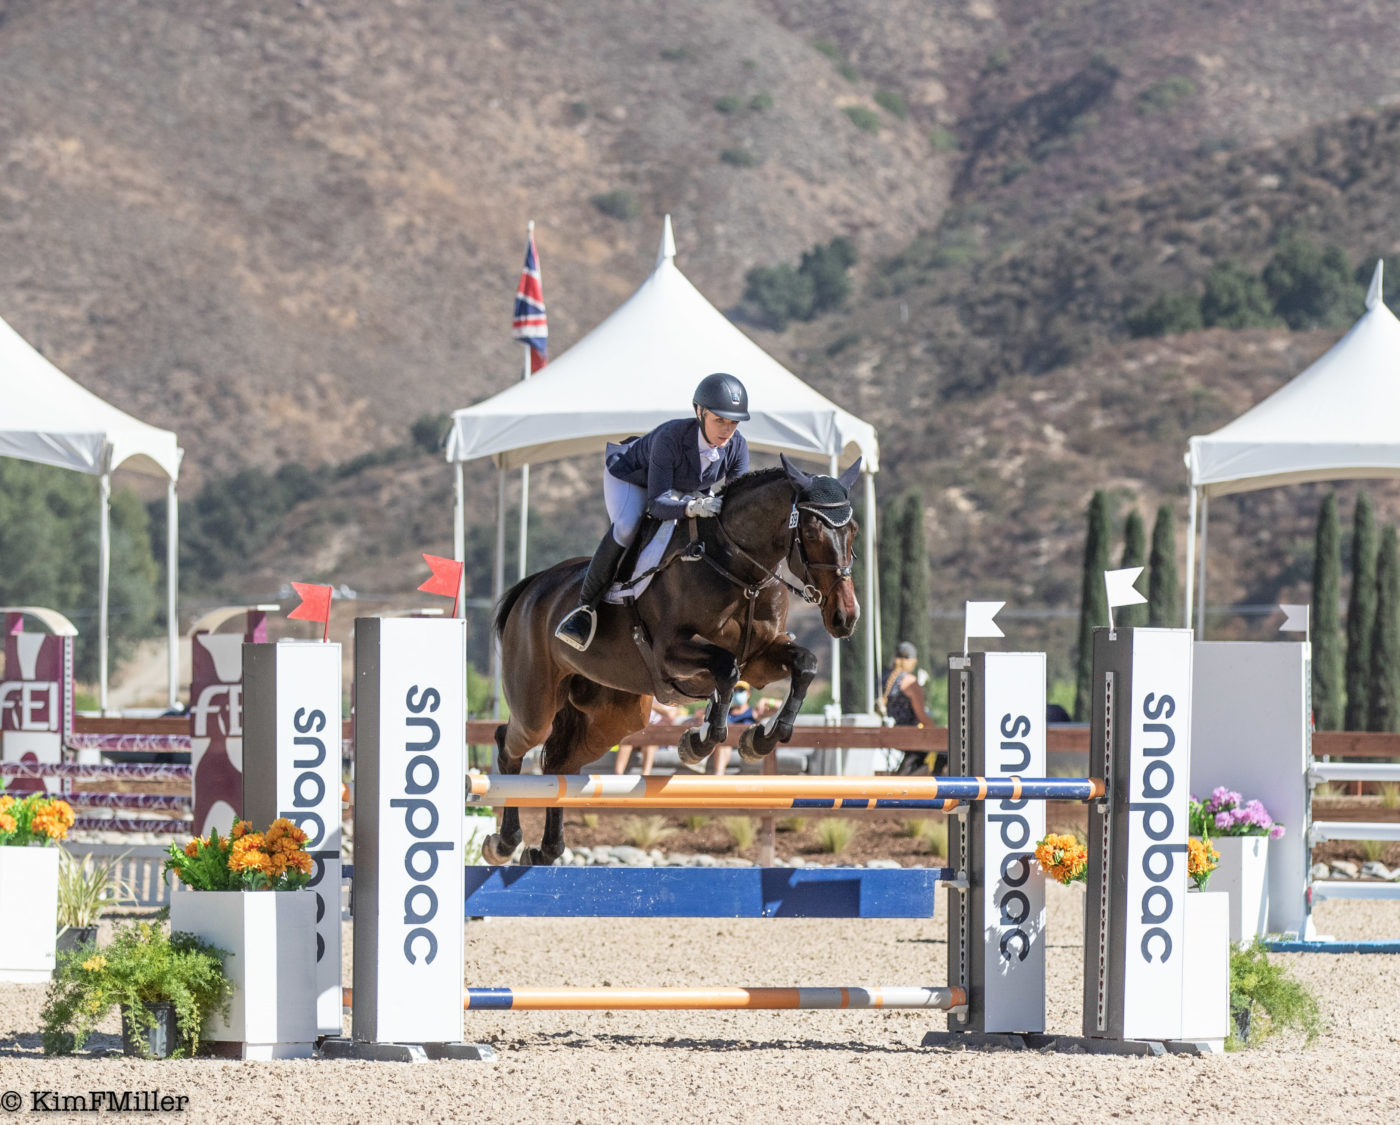 CCI2*-L - 3rd - Audrey Sanborn and OBOS Quality Time